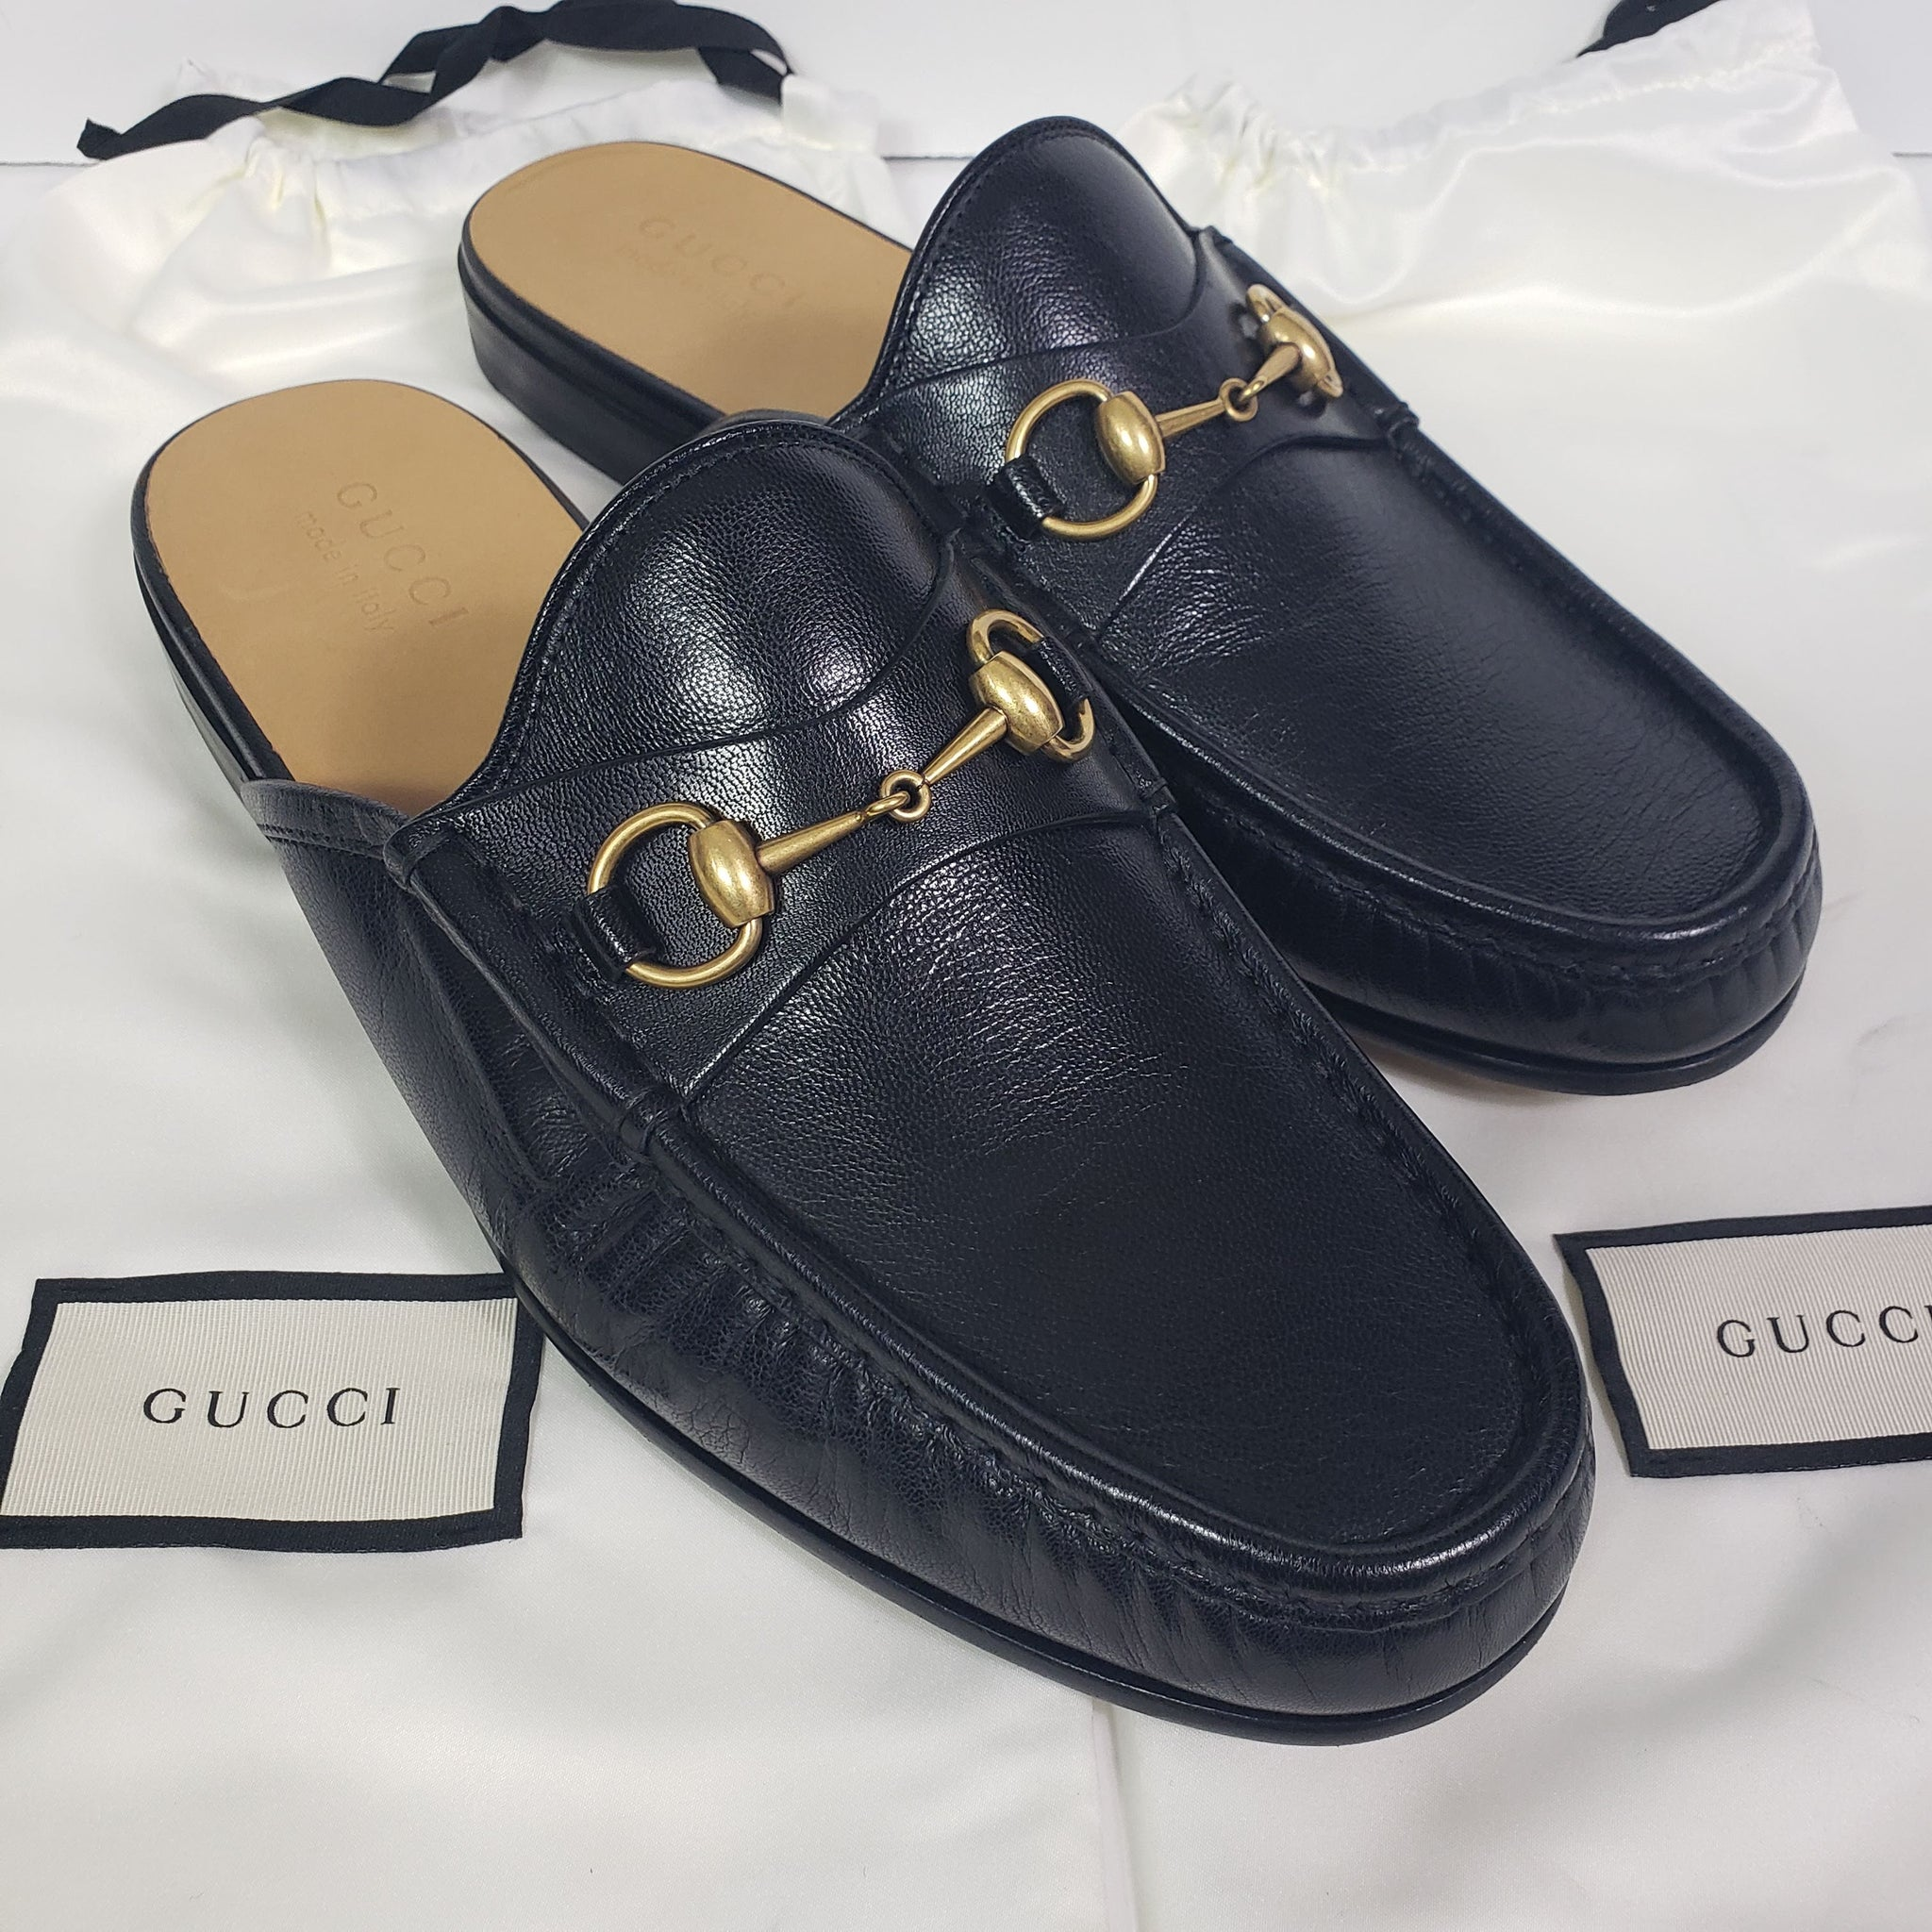 Gucci Open Roos Loafers Mules Black Size 11 Mens Shoes